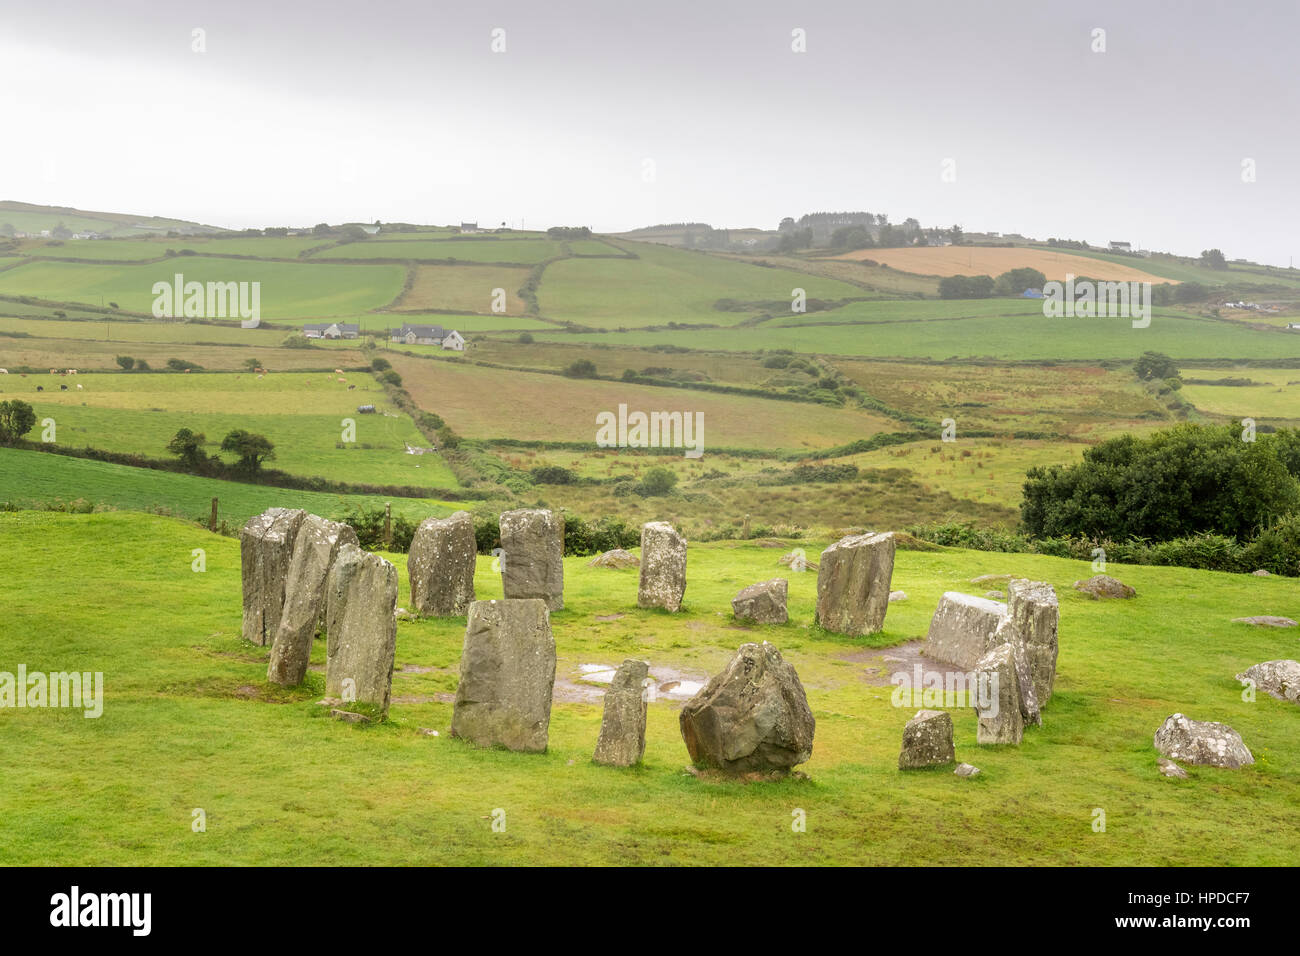 View on the Drombeg Stone Circle near Clonakilty in the south of Ireland - Stock Image